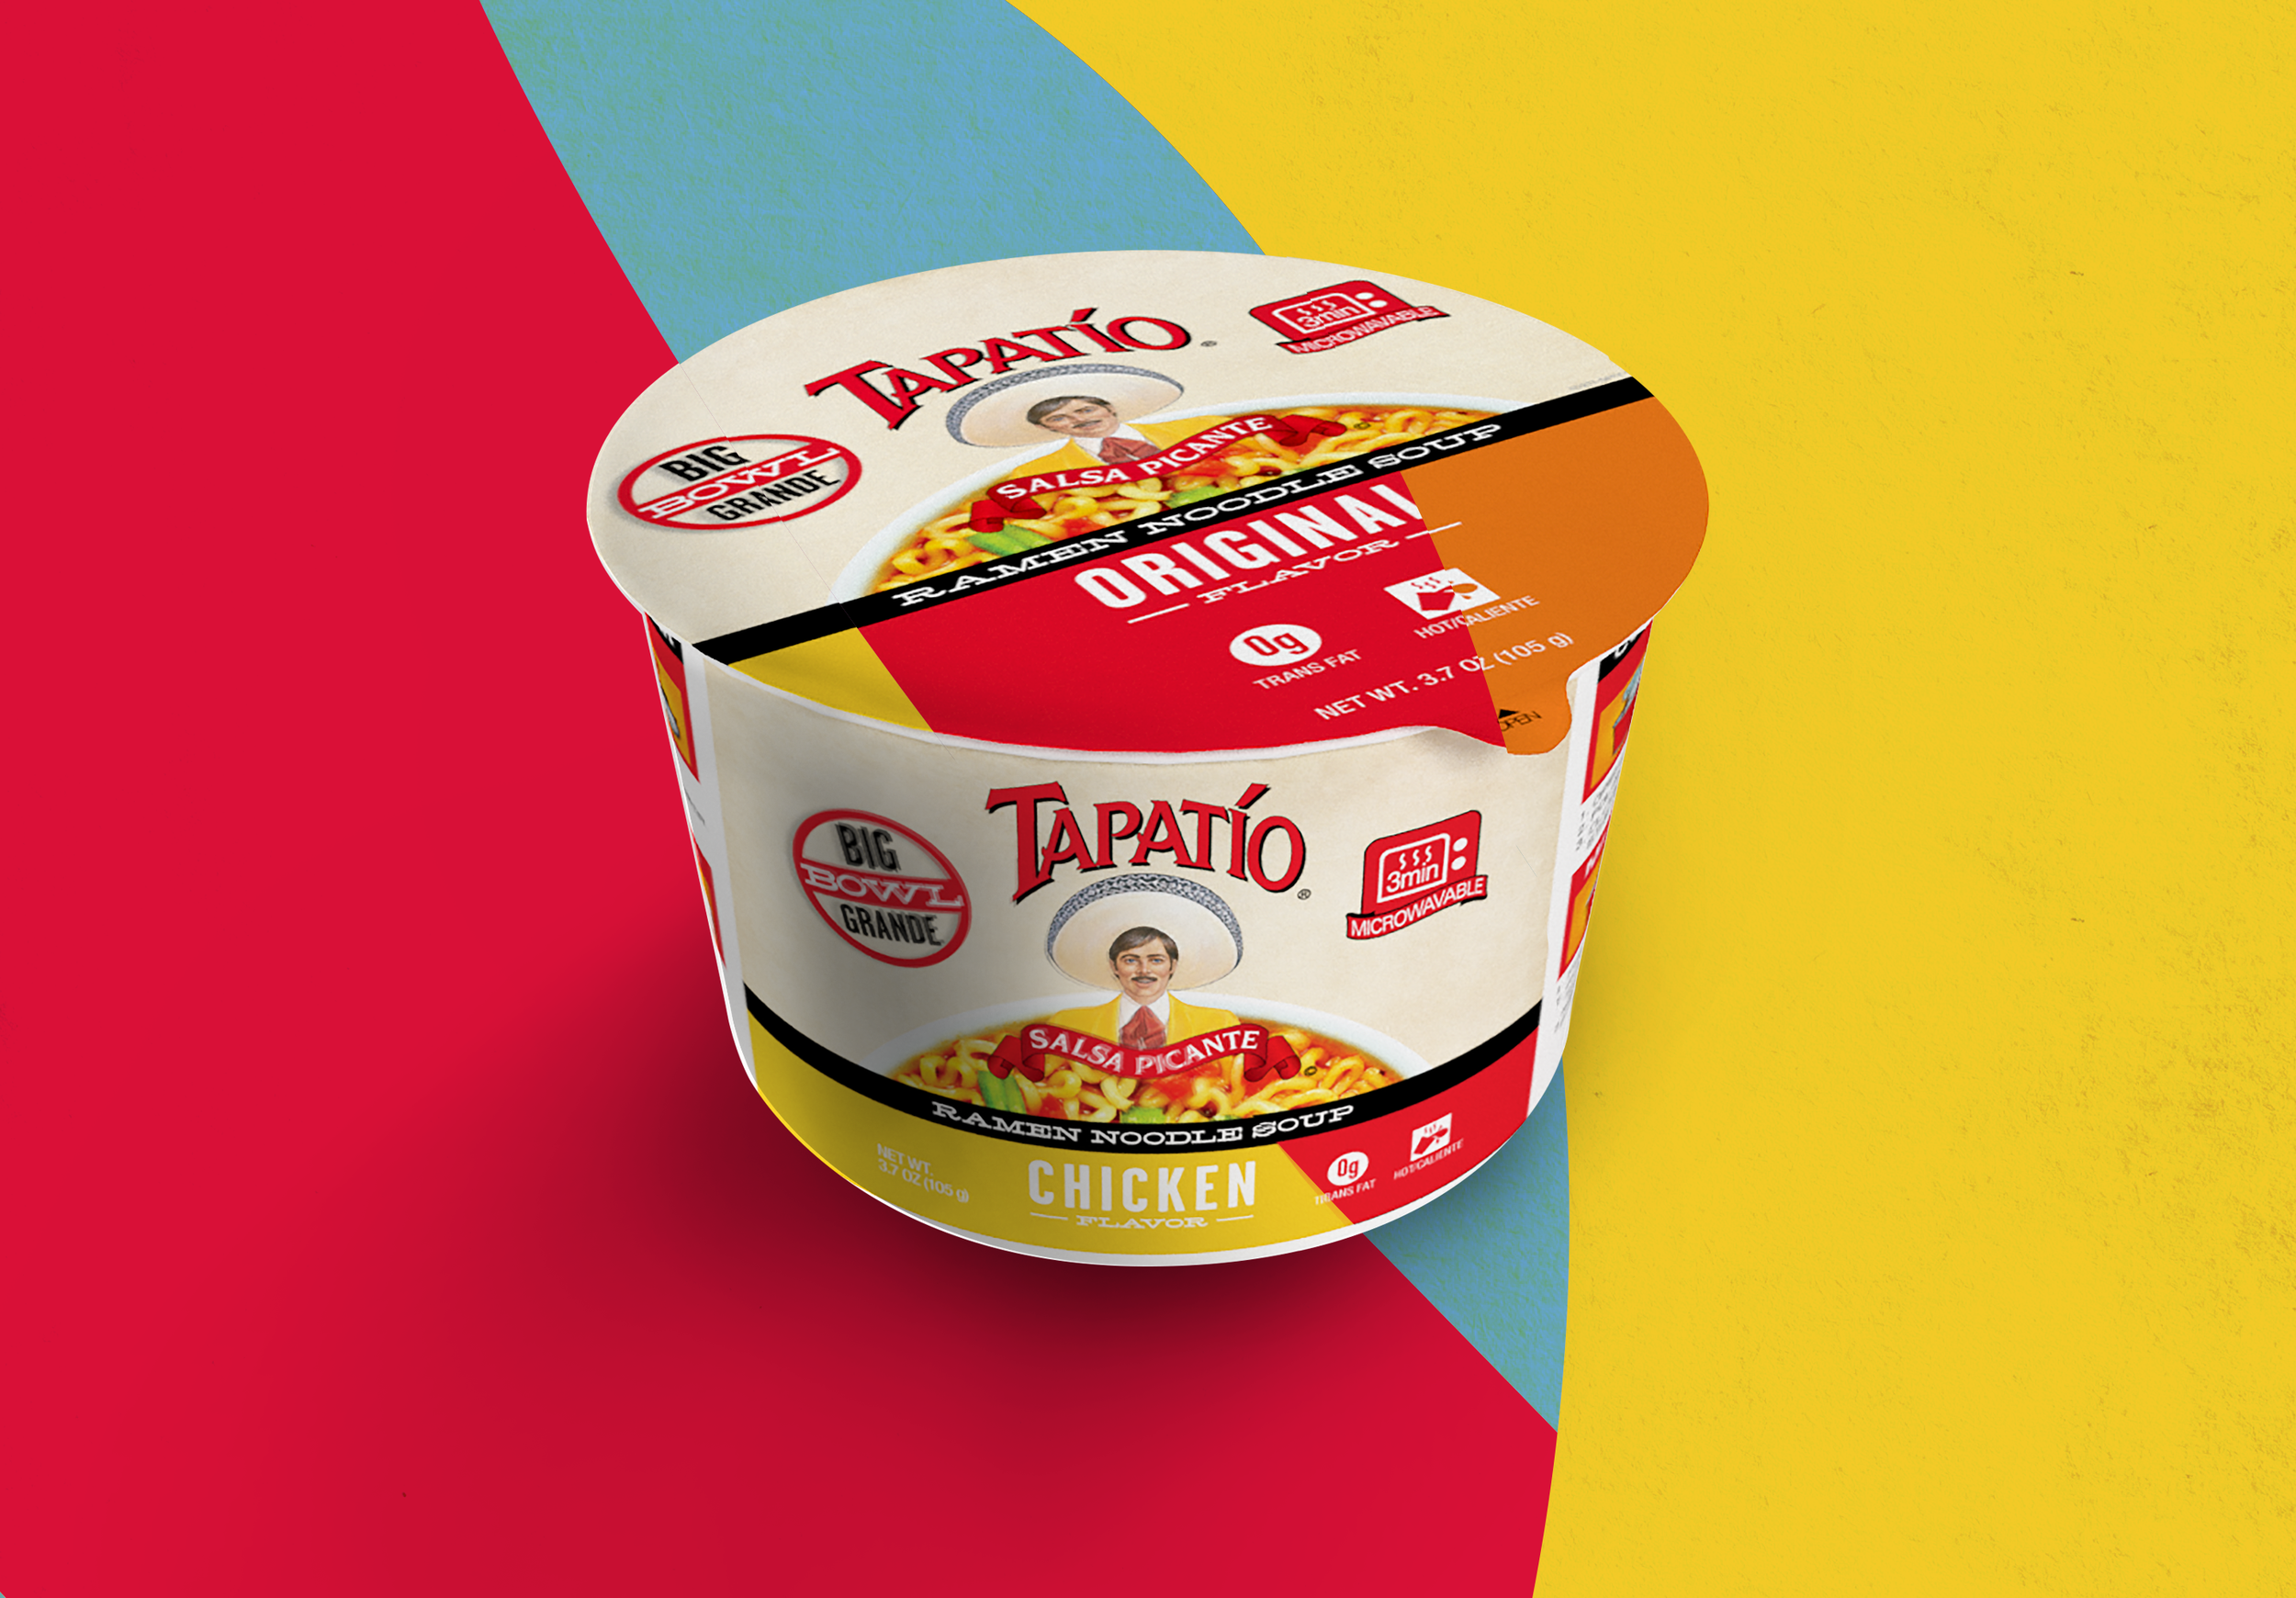 IT'S HERE. - Now available for a tasty, spicy, savory experience in Original, Chicken, Beef and Shrimp. Buy now online and at selected retail stores, coming soon to more stores nationwide. Try one, try all three and tell your friends!